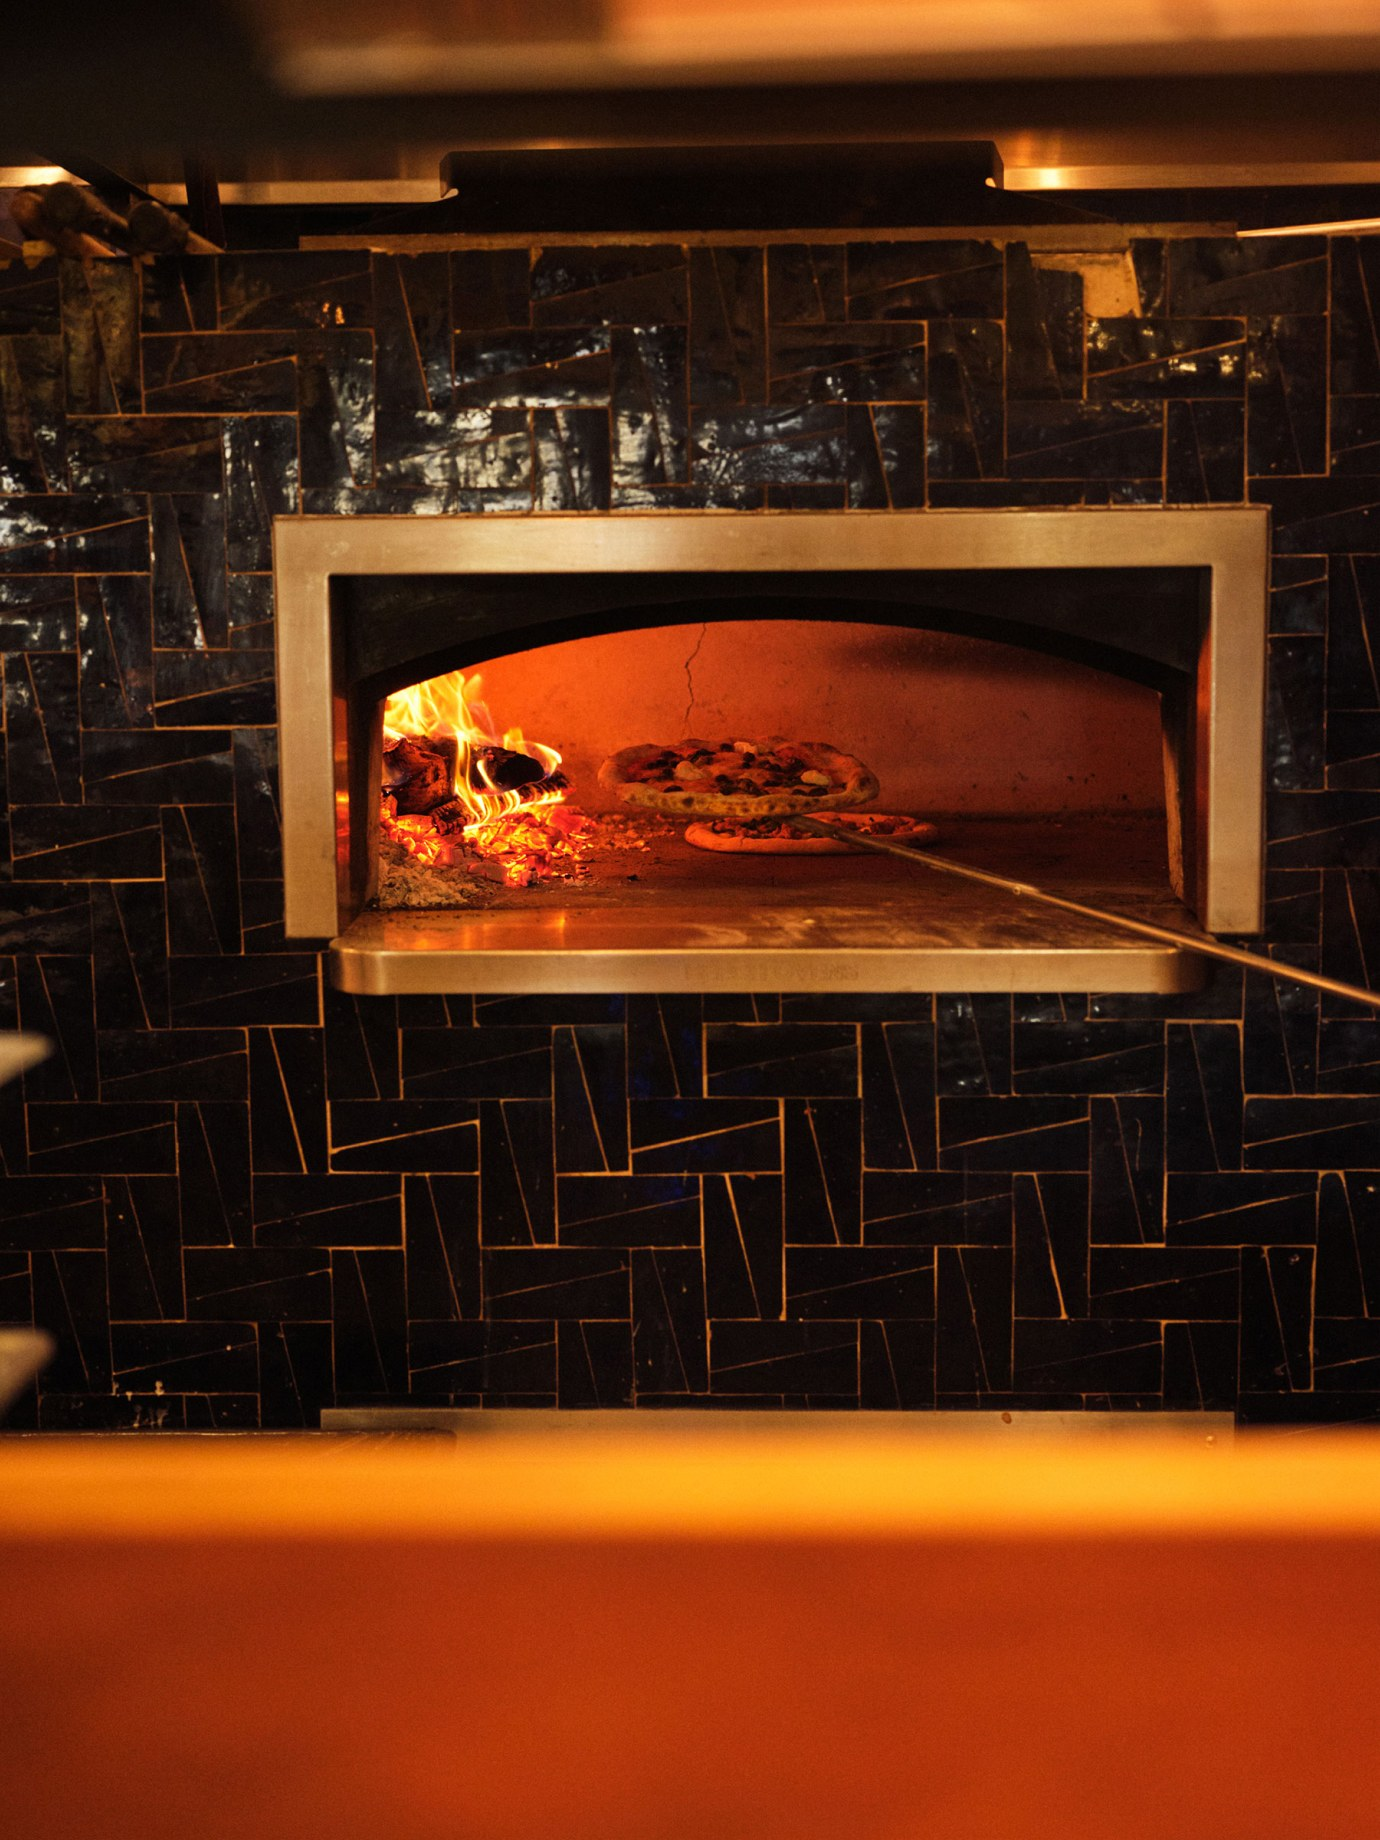 A pizza is cooked in a pizza oven.